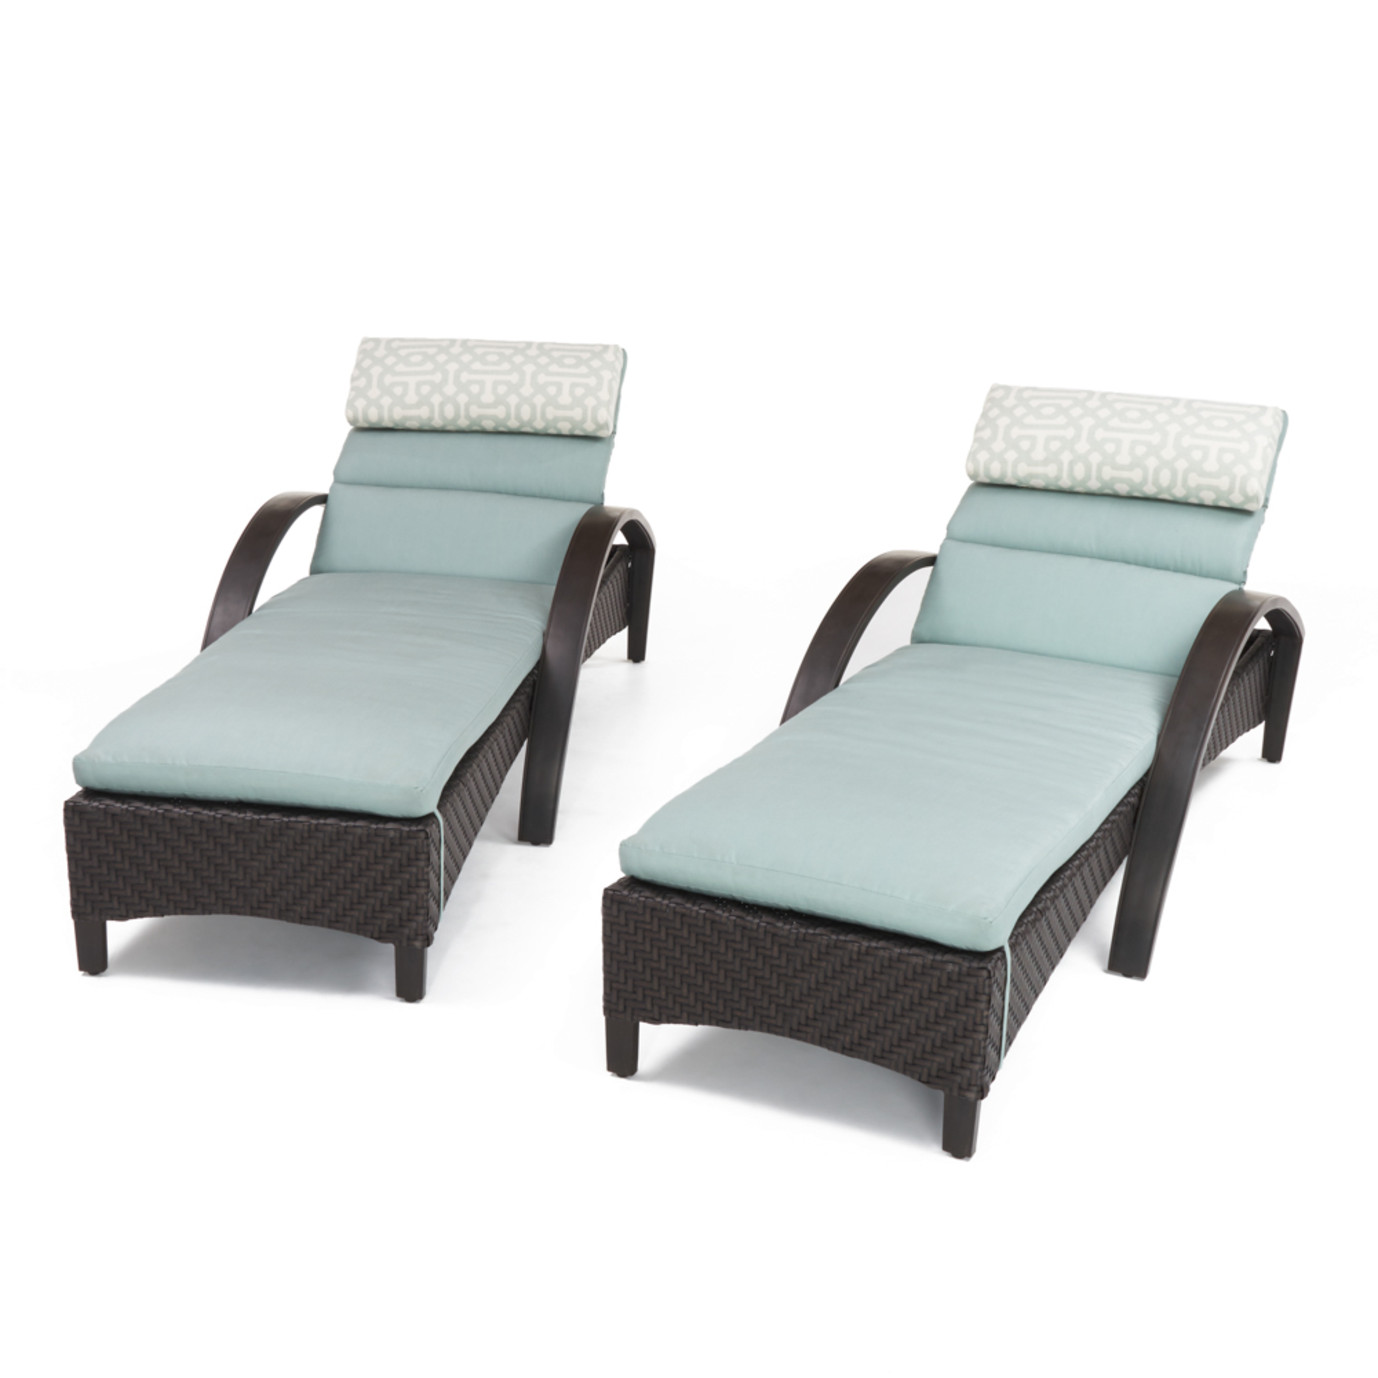 Barcelo™ Chaise Lounge 2pk - Spa Blue